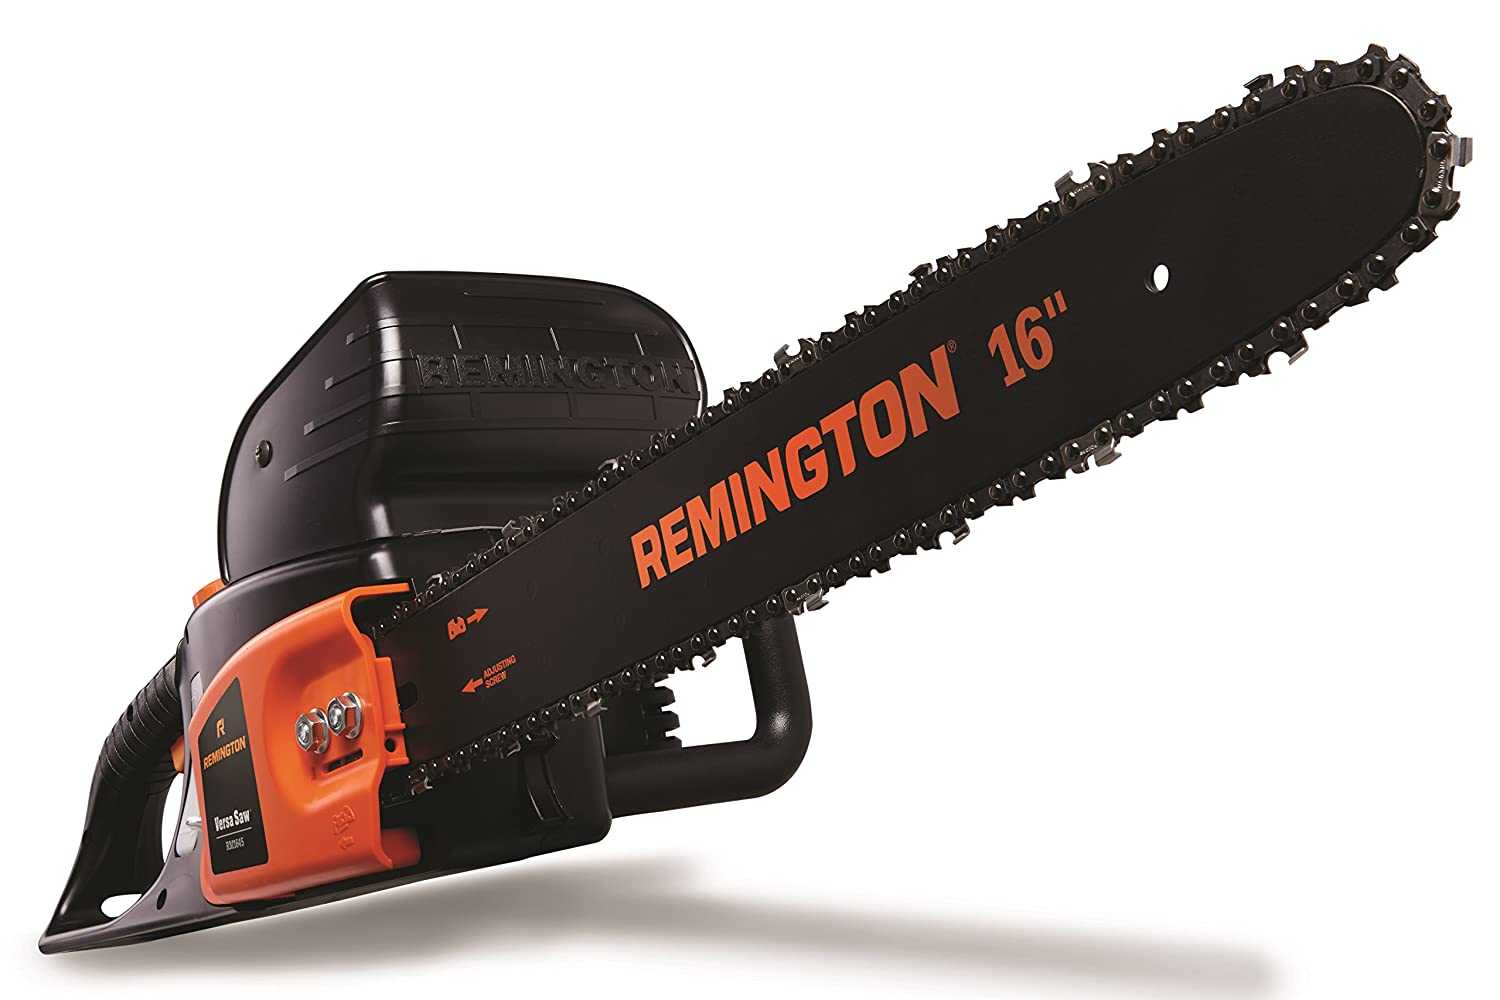 Amazon remington rm1645 versa saw 12 amp 16 inch electric amazon remington rm1645 versa saw 12 amp 16 inch electric chainsaw power chain saws garden outdoor keyboard keysfo Gallery